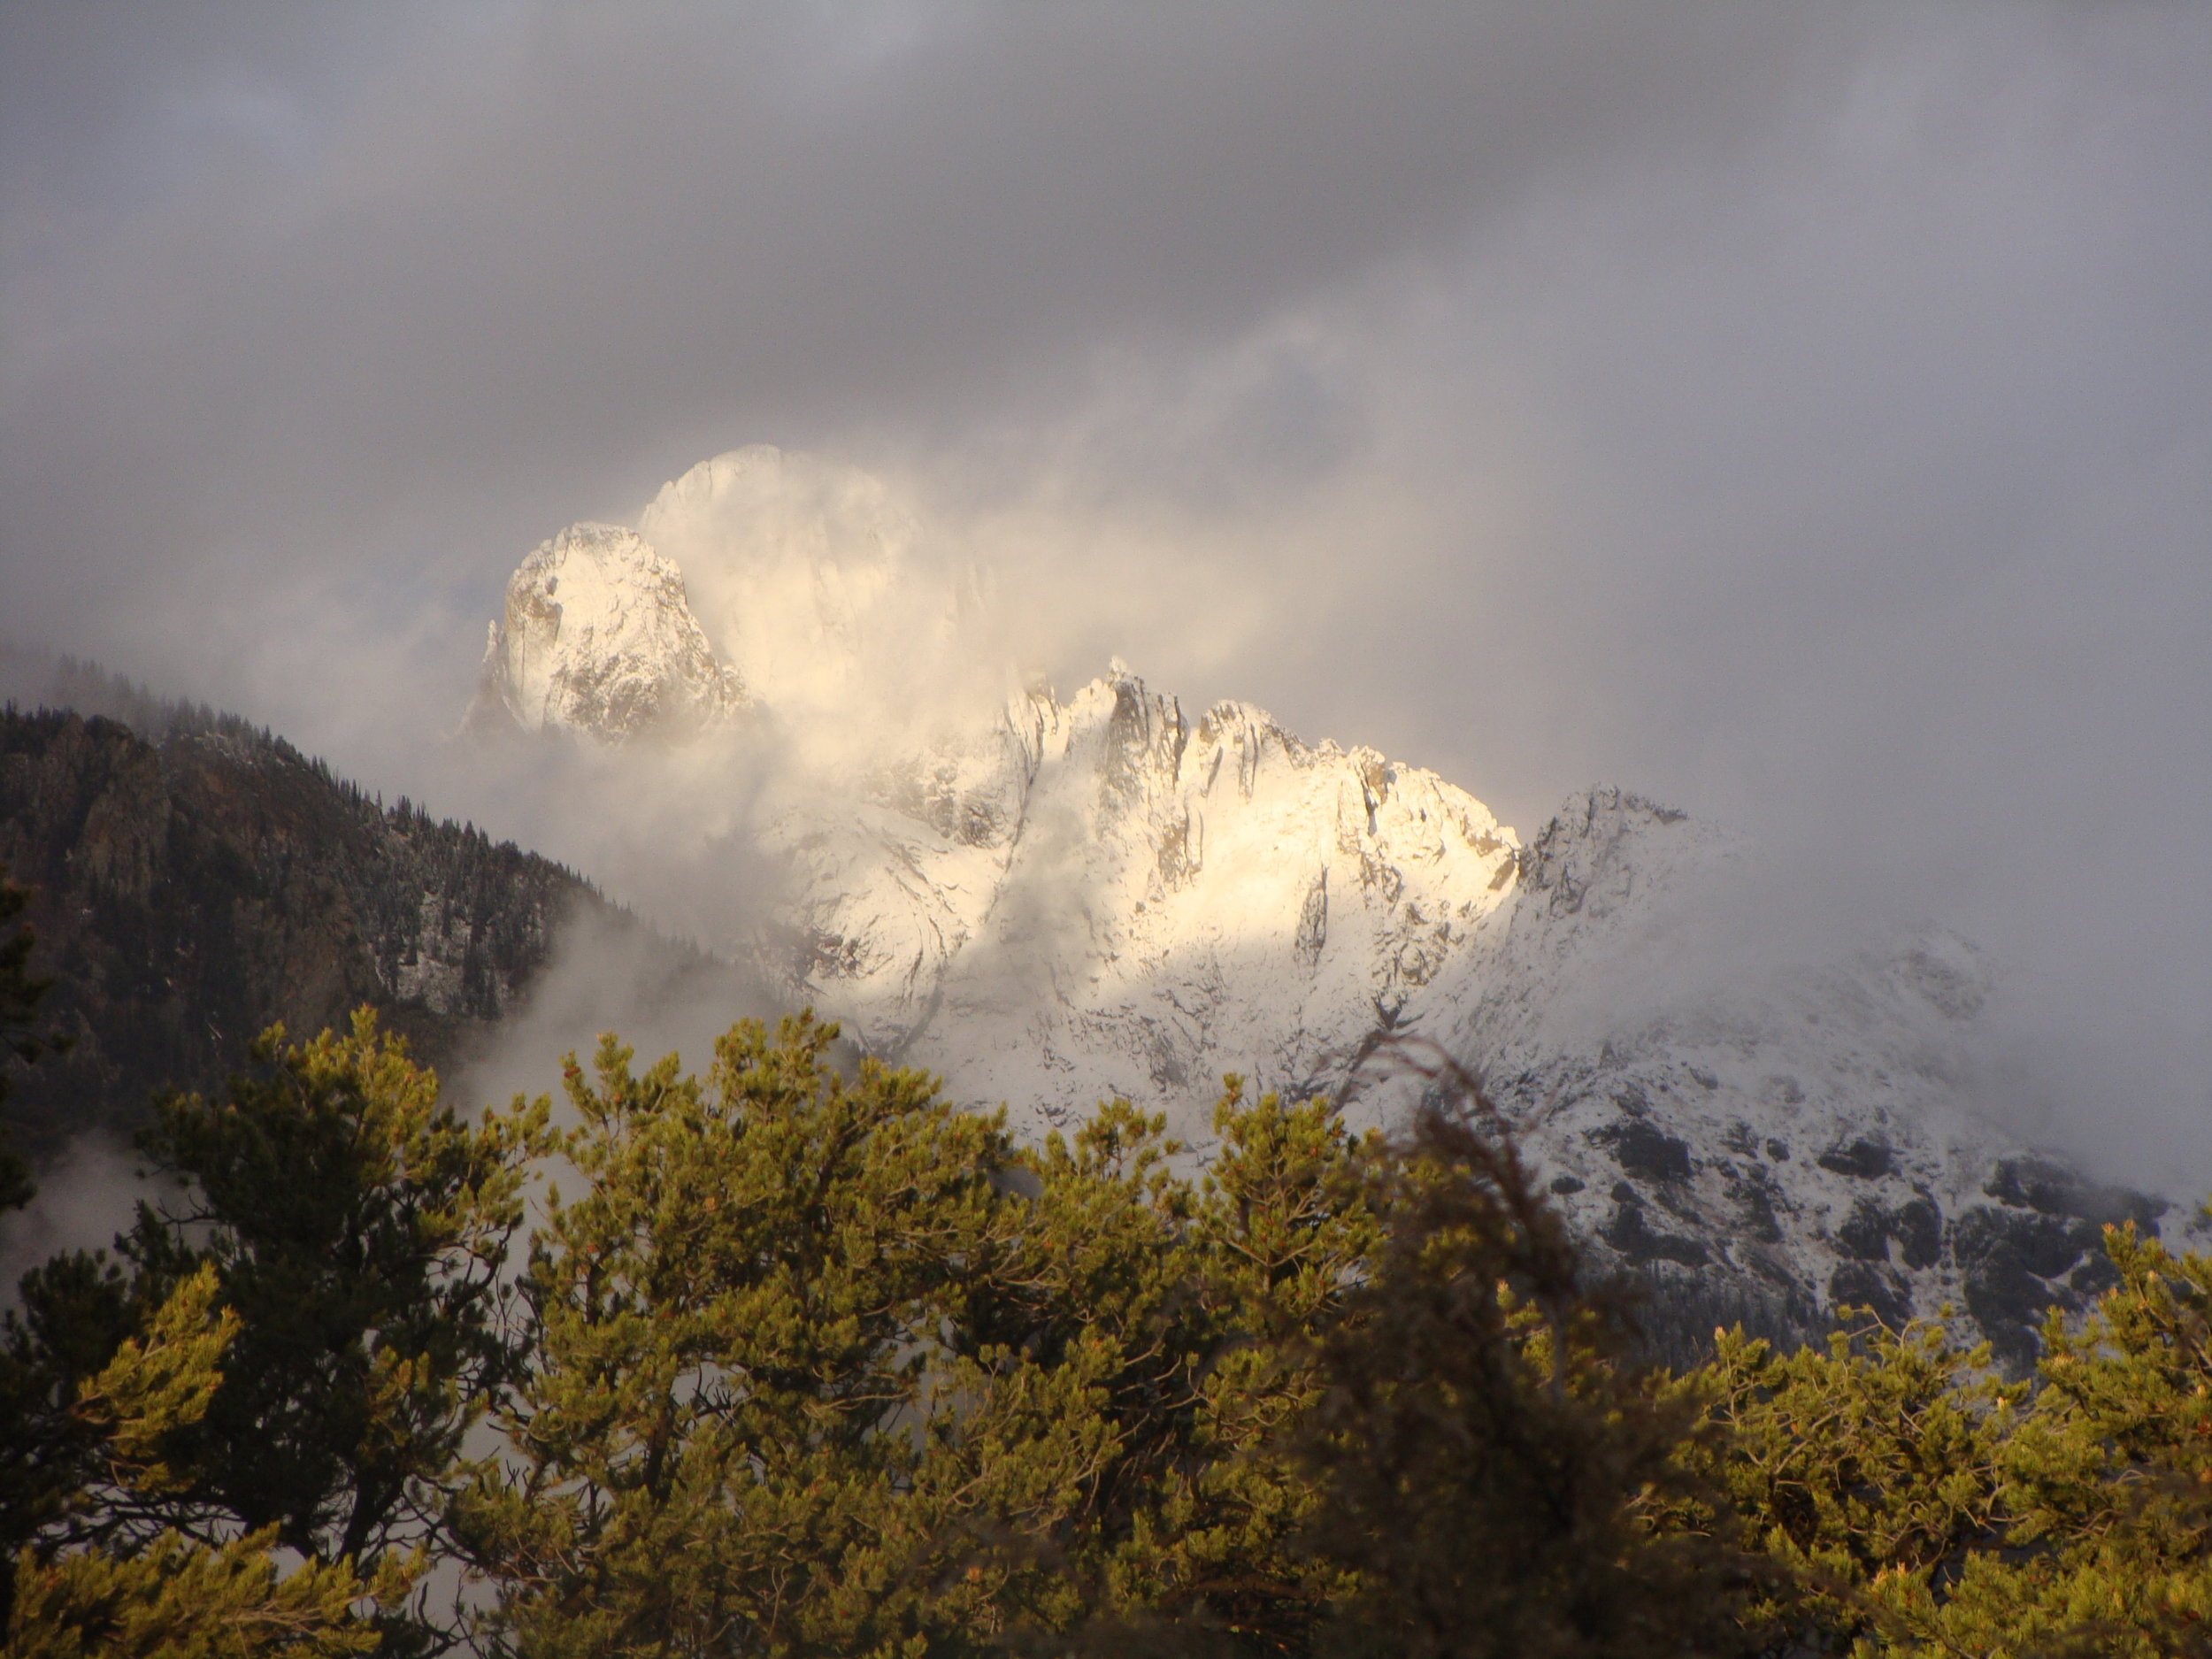 … and Snow Falls on the Sacred Sangres